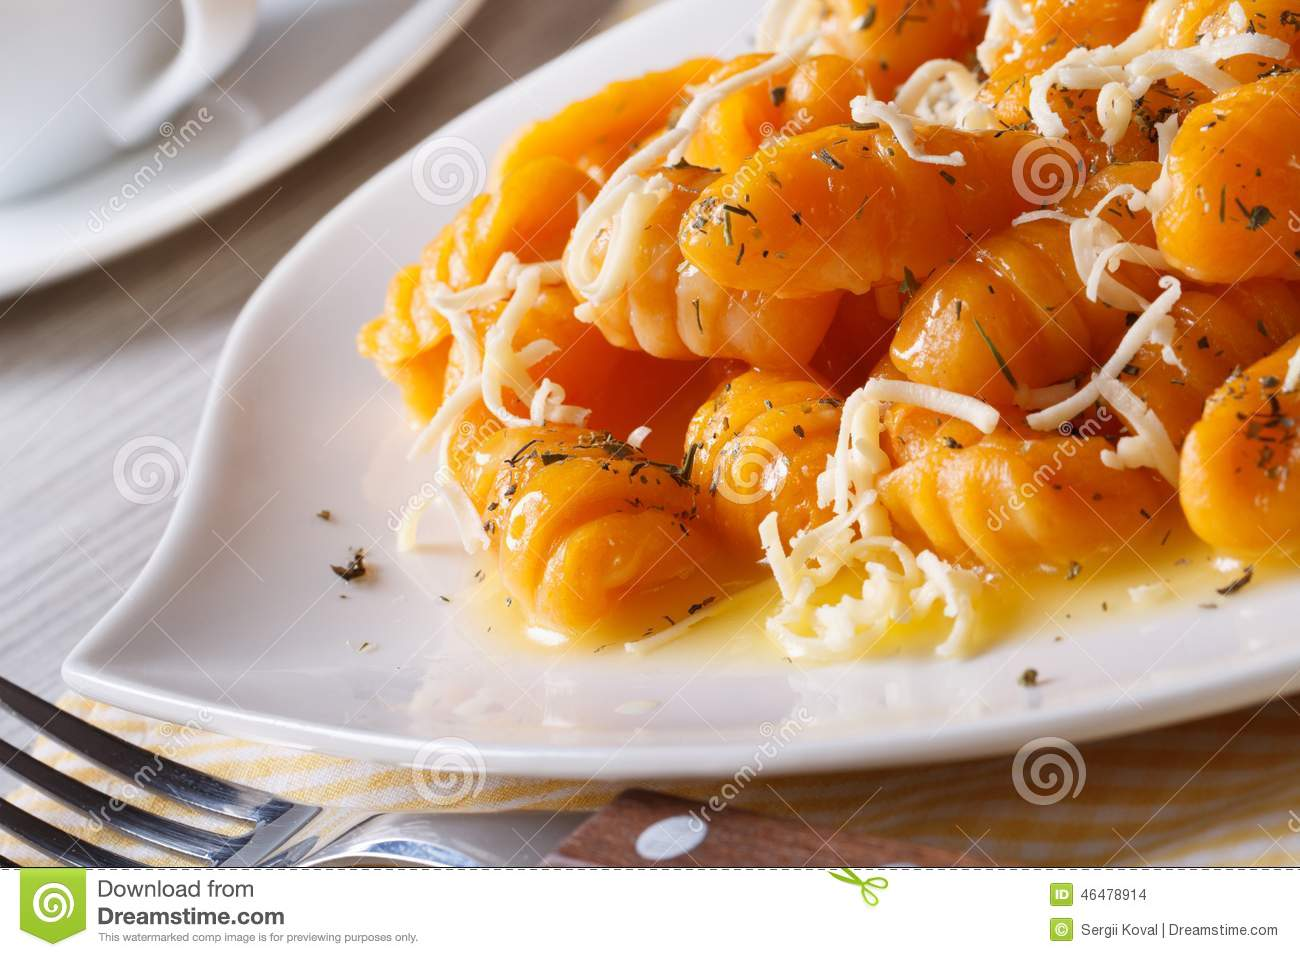 Pumpkin gnocchi with cheese and butter. Horizontal